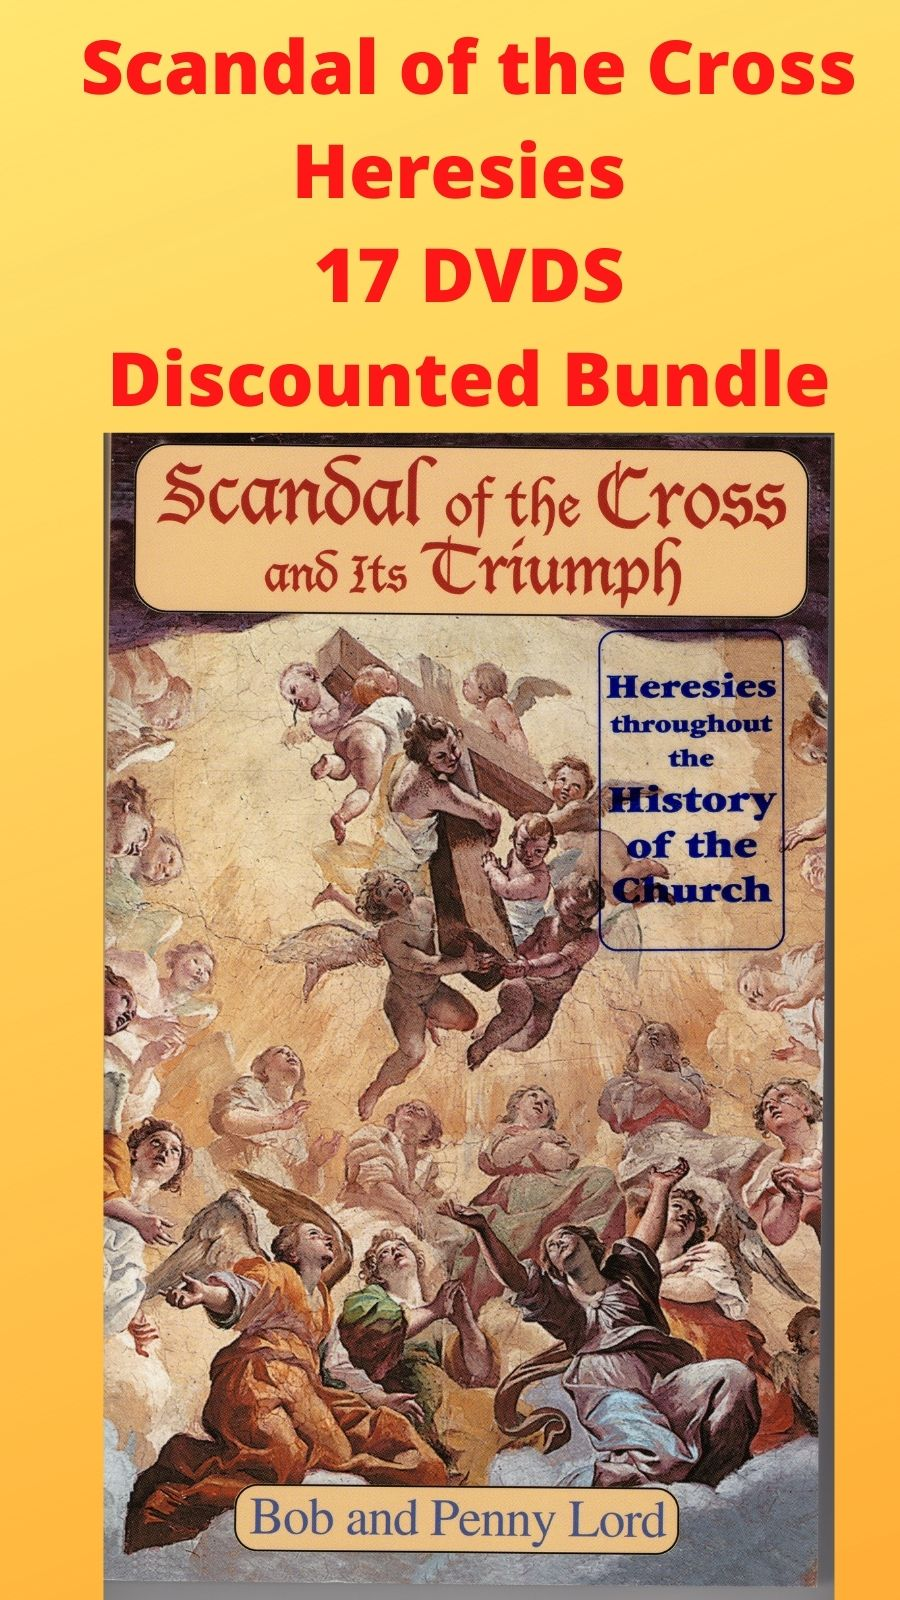 Scandal of the Cross - Heresies 17 DVDS Discounted Bundle